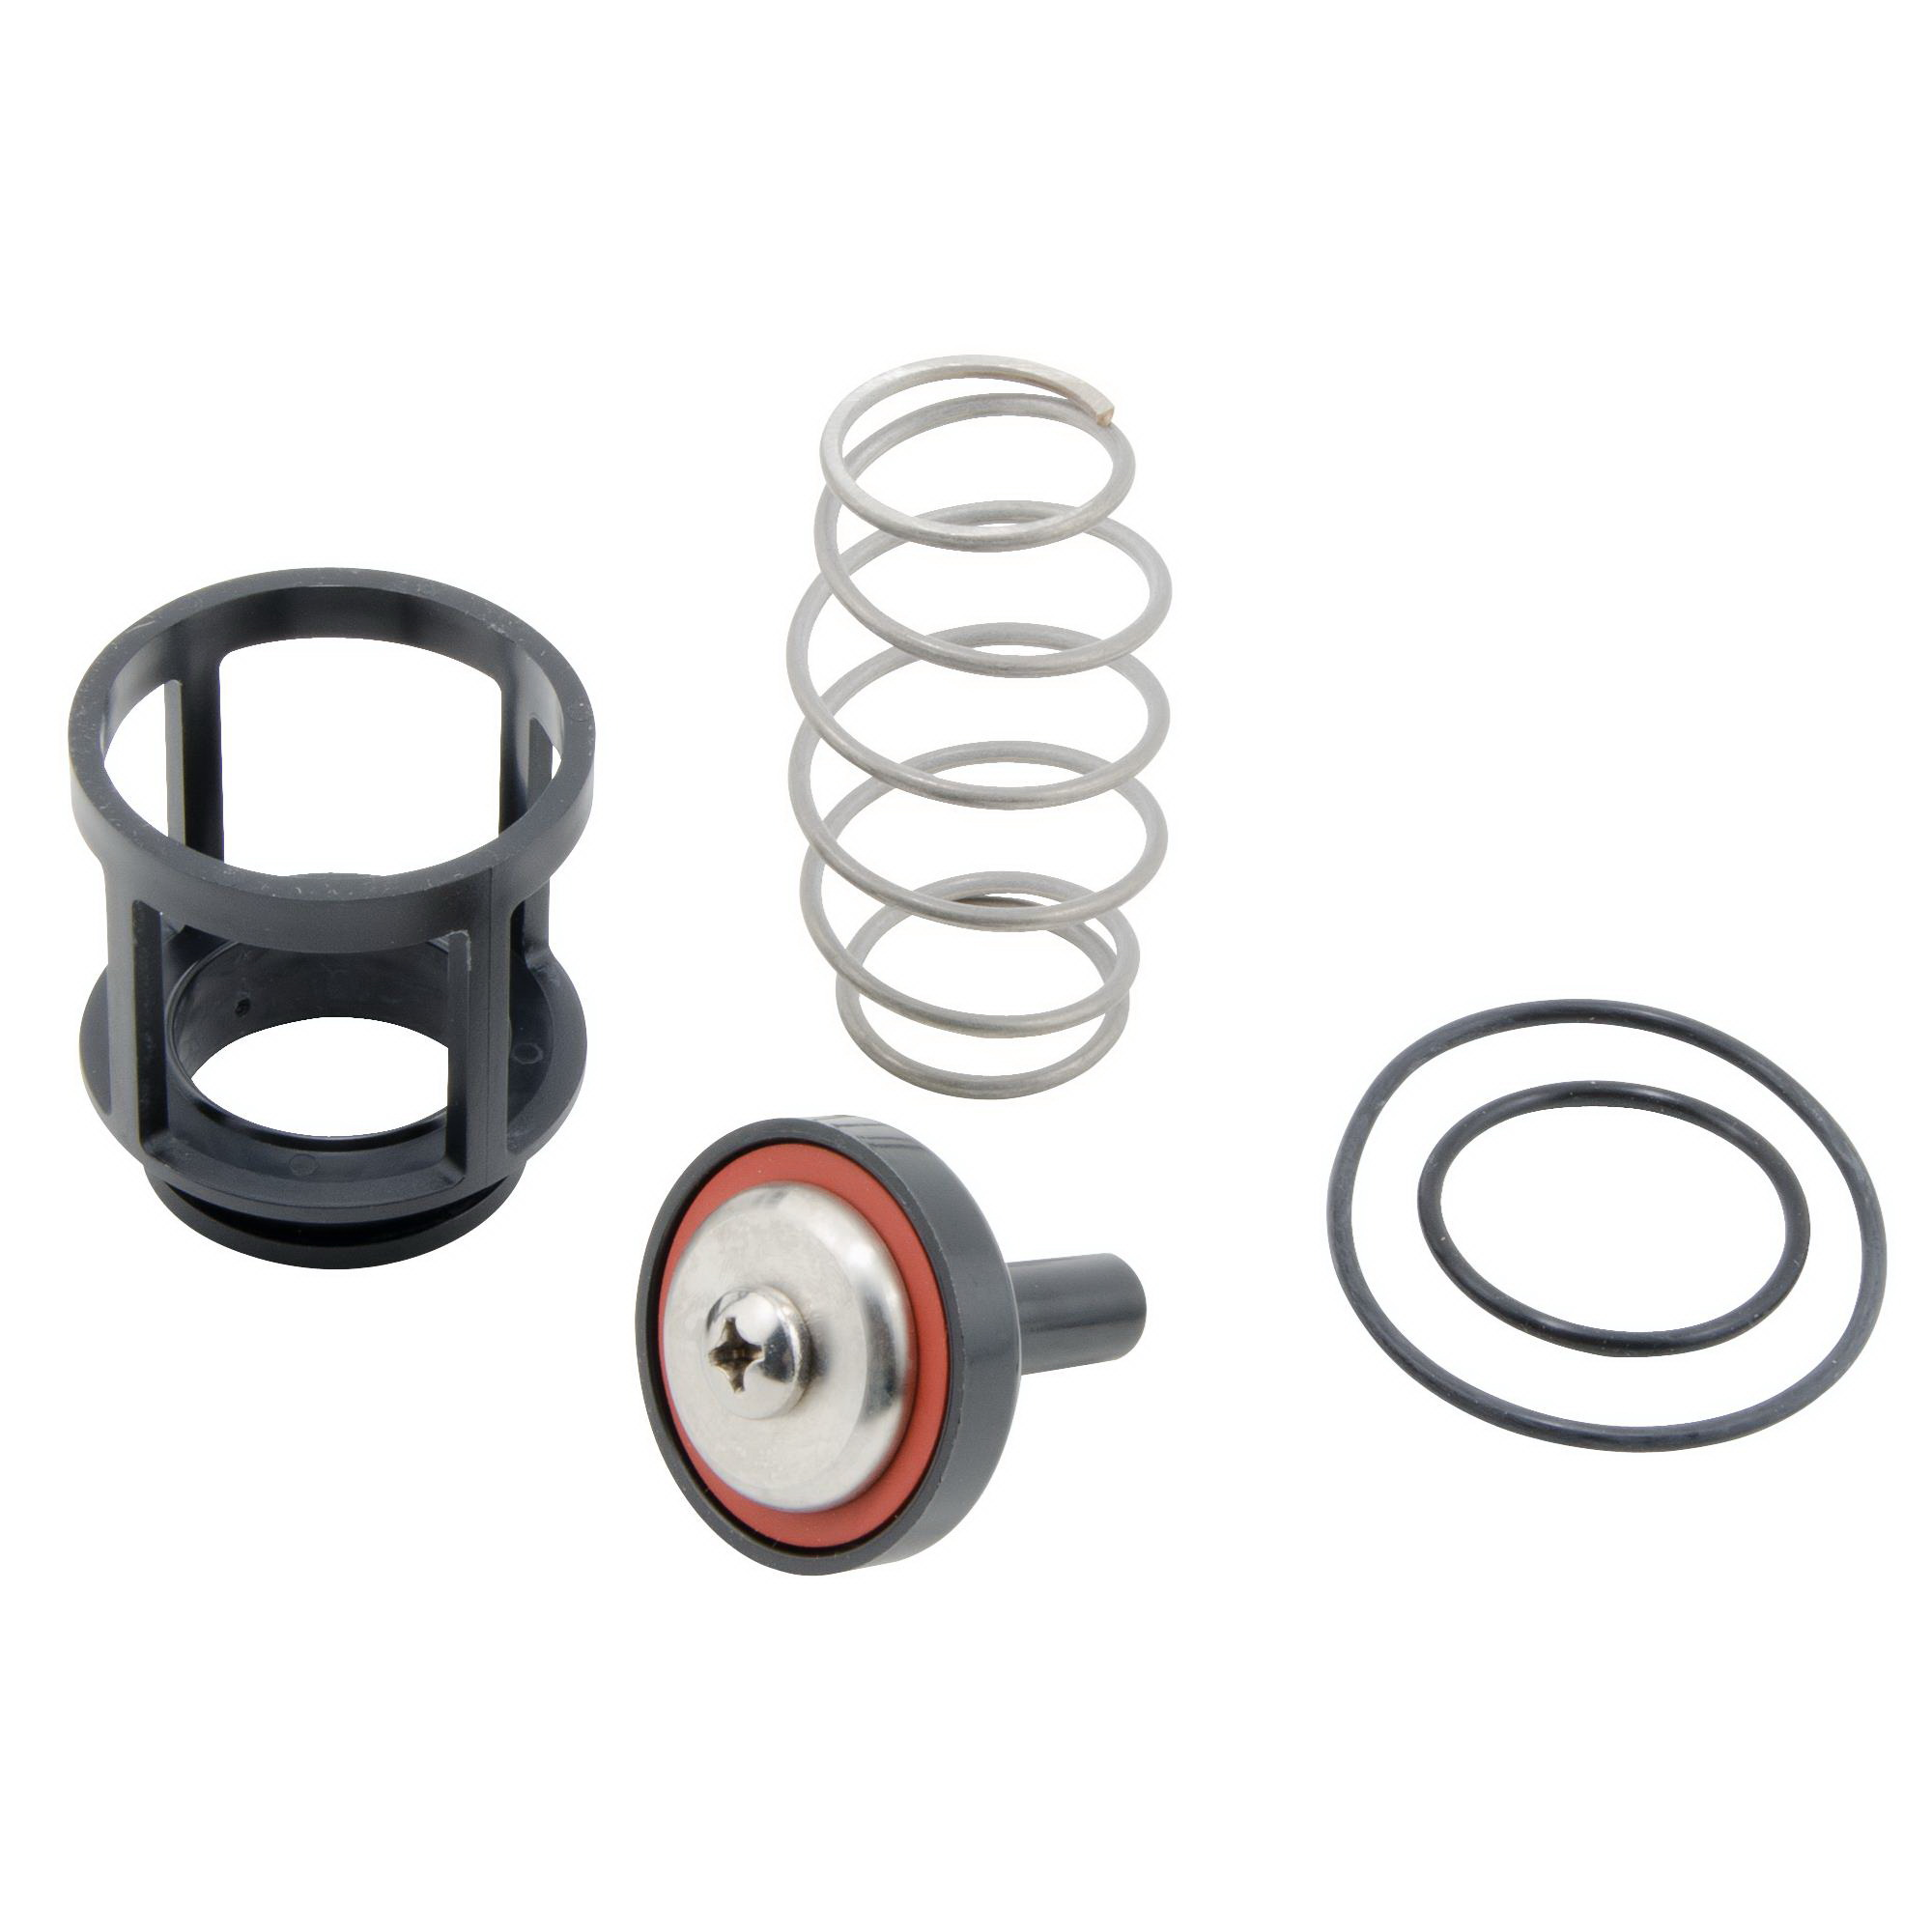 WATTS® 0888111 Check Valve Repair Kit for 3/4 in 919/LF919 Series Reduced Pressure Zone Assemblies